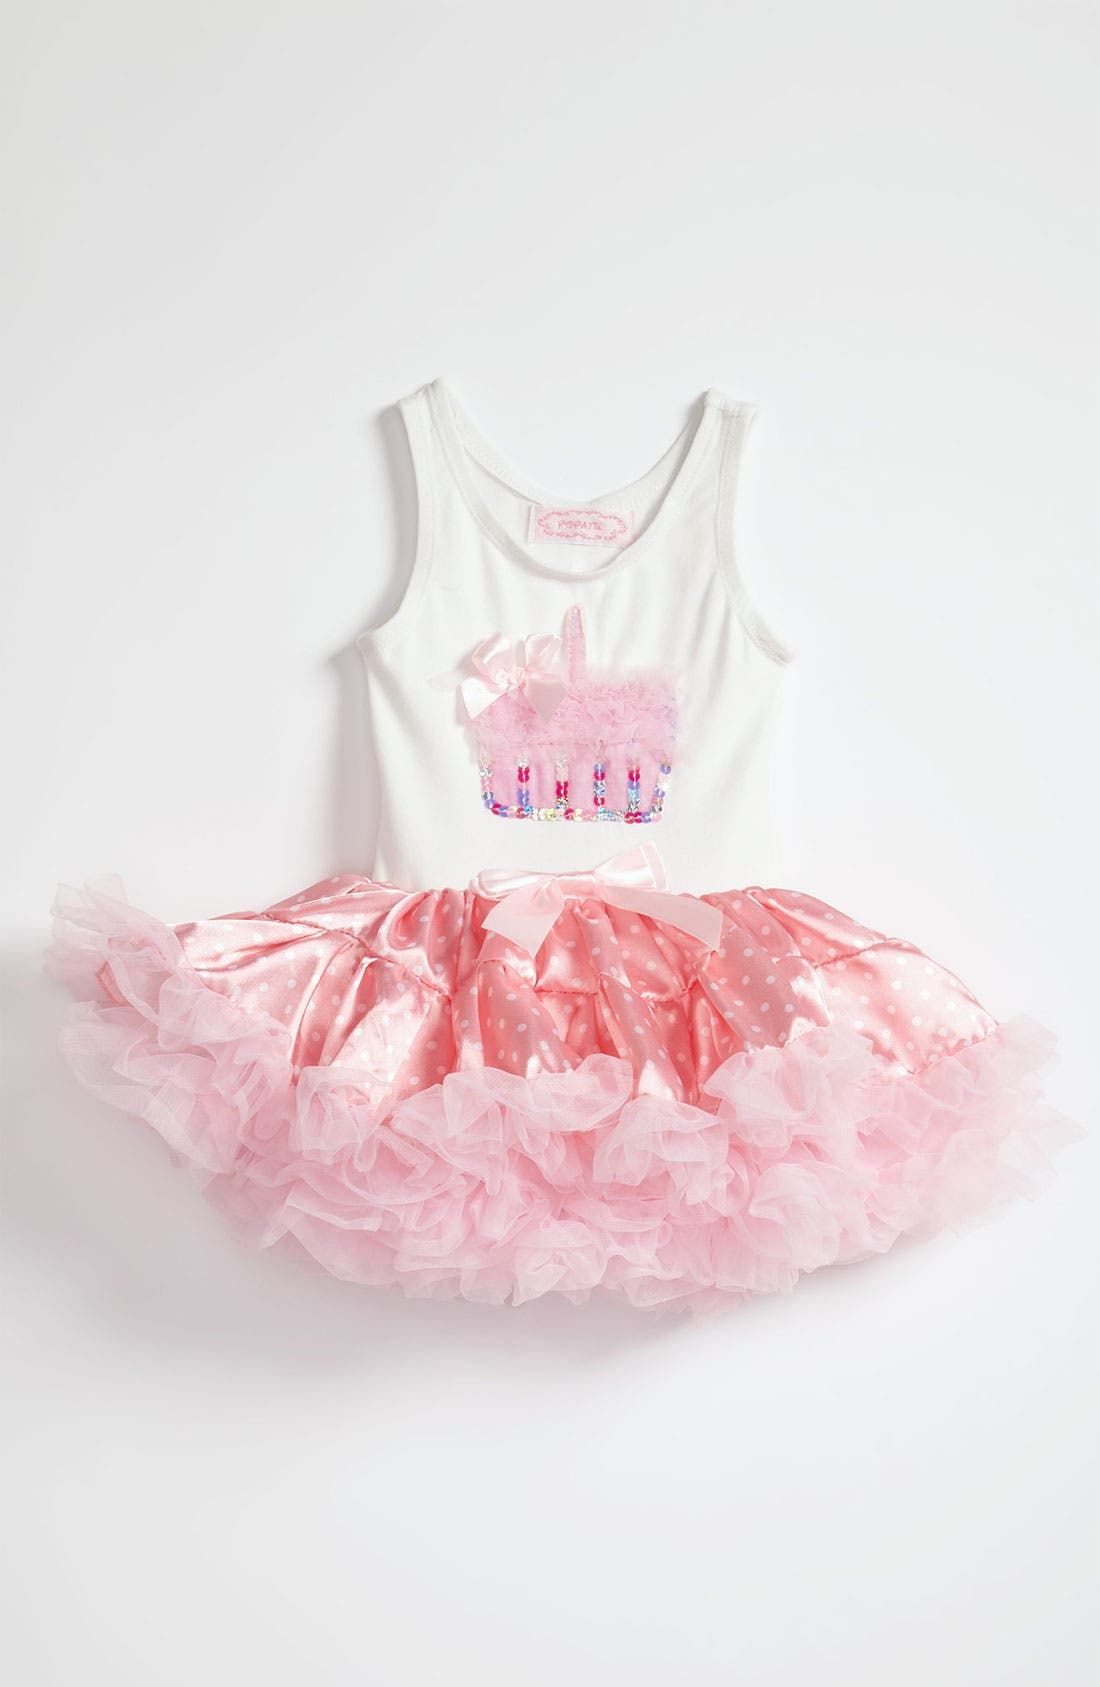 Alternate Image 1 Selected - Popatu 'Cupcake' Petticoat Dress (Baby Girls)